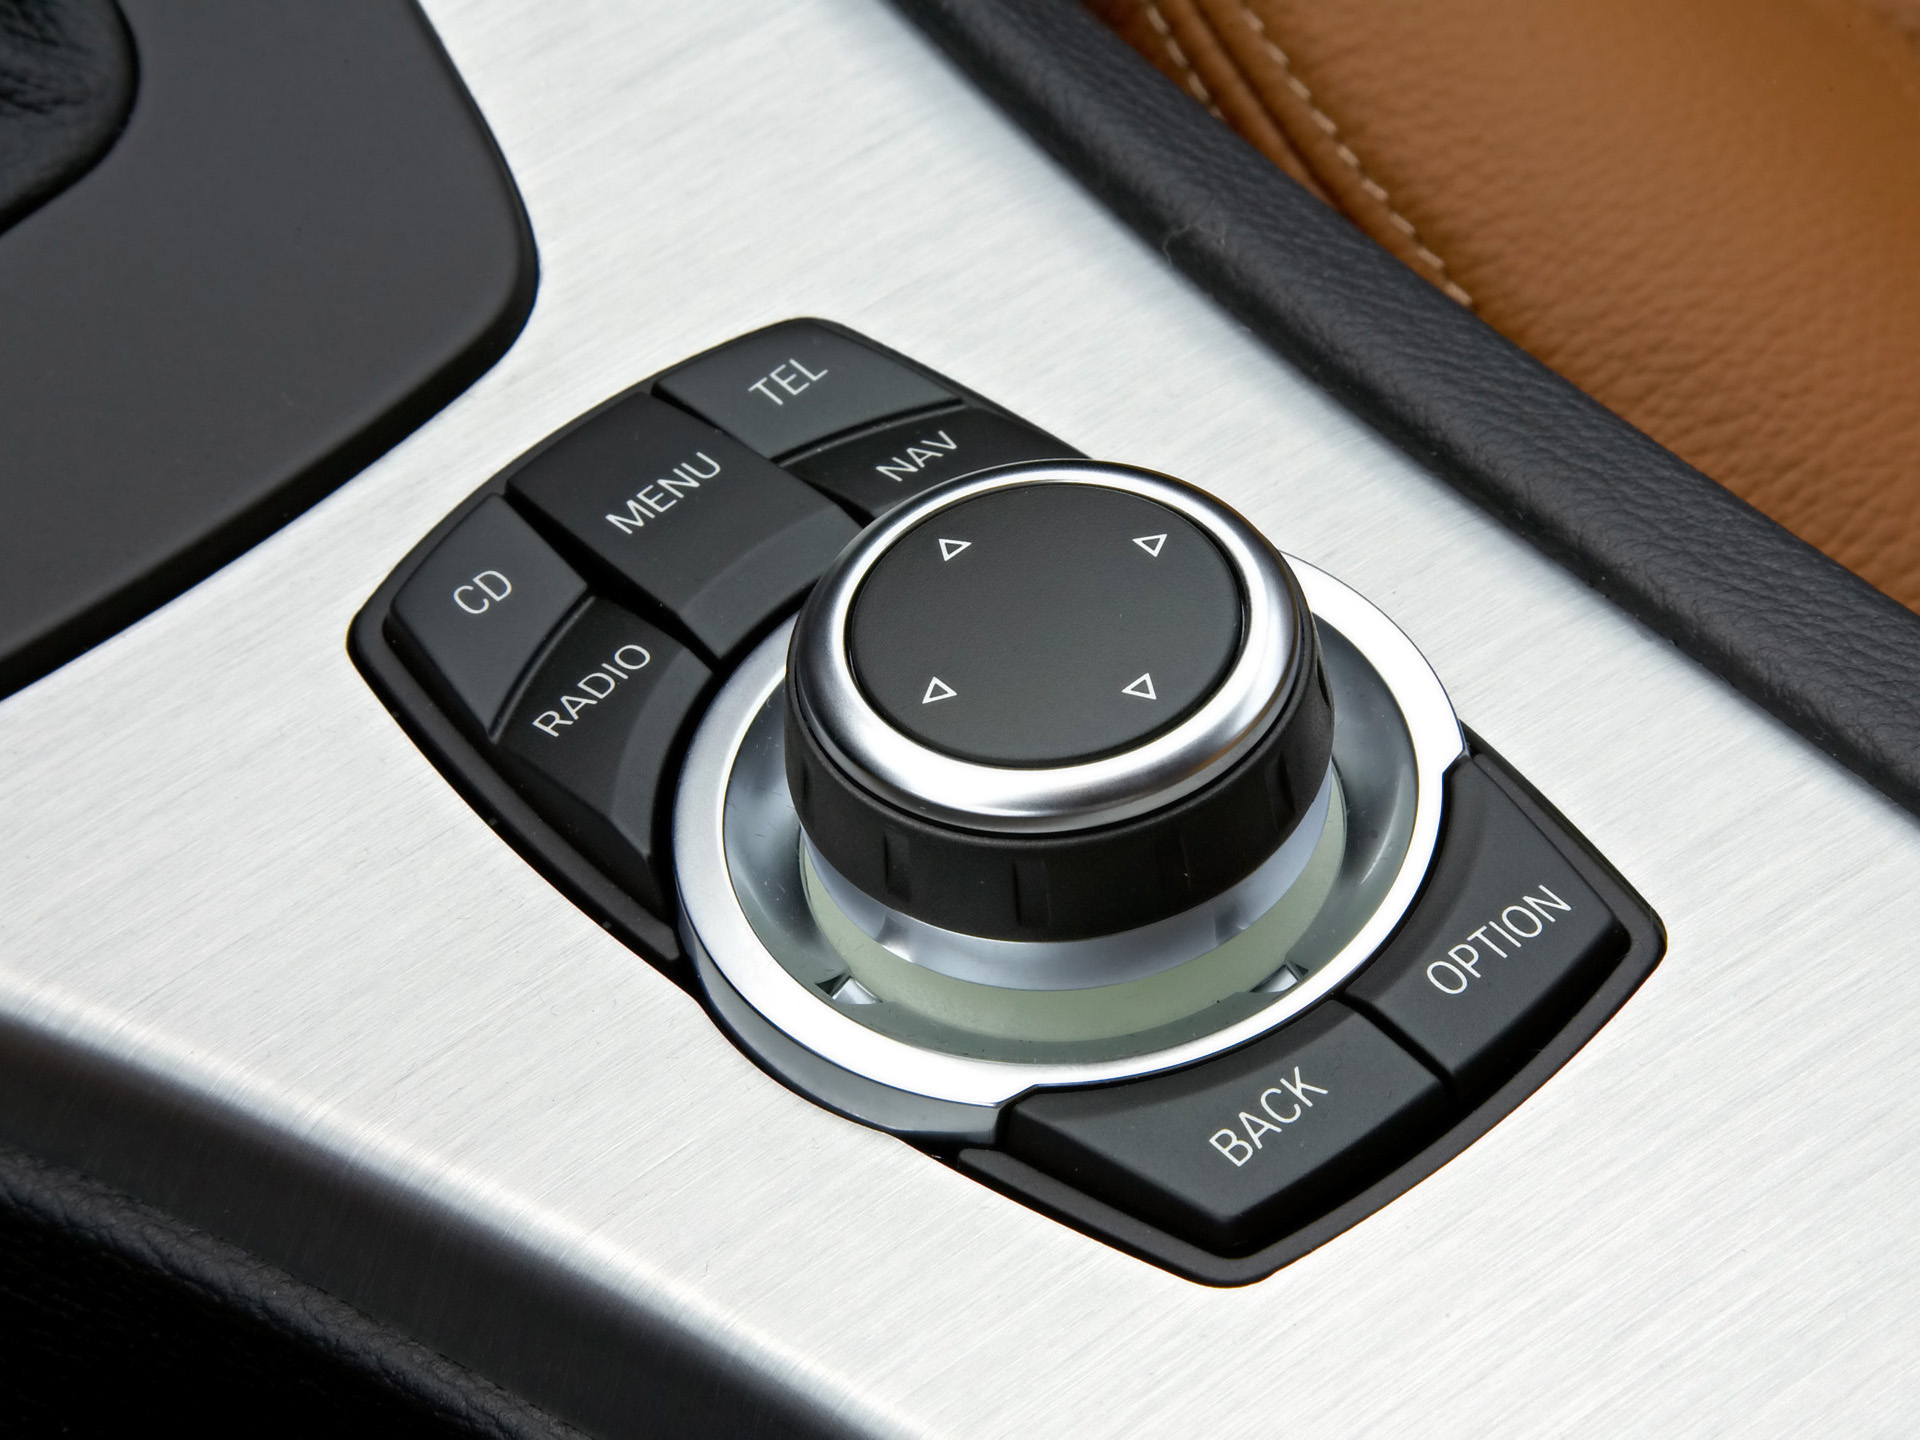 BMW iDrive redesign:  Easy access shortcut buttons accommodate both frequency of use and immediacy of access for main features.